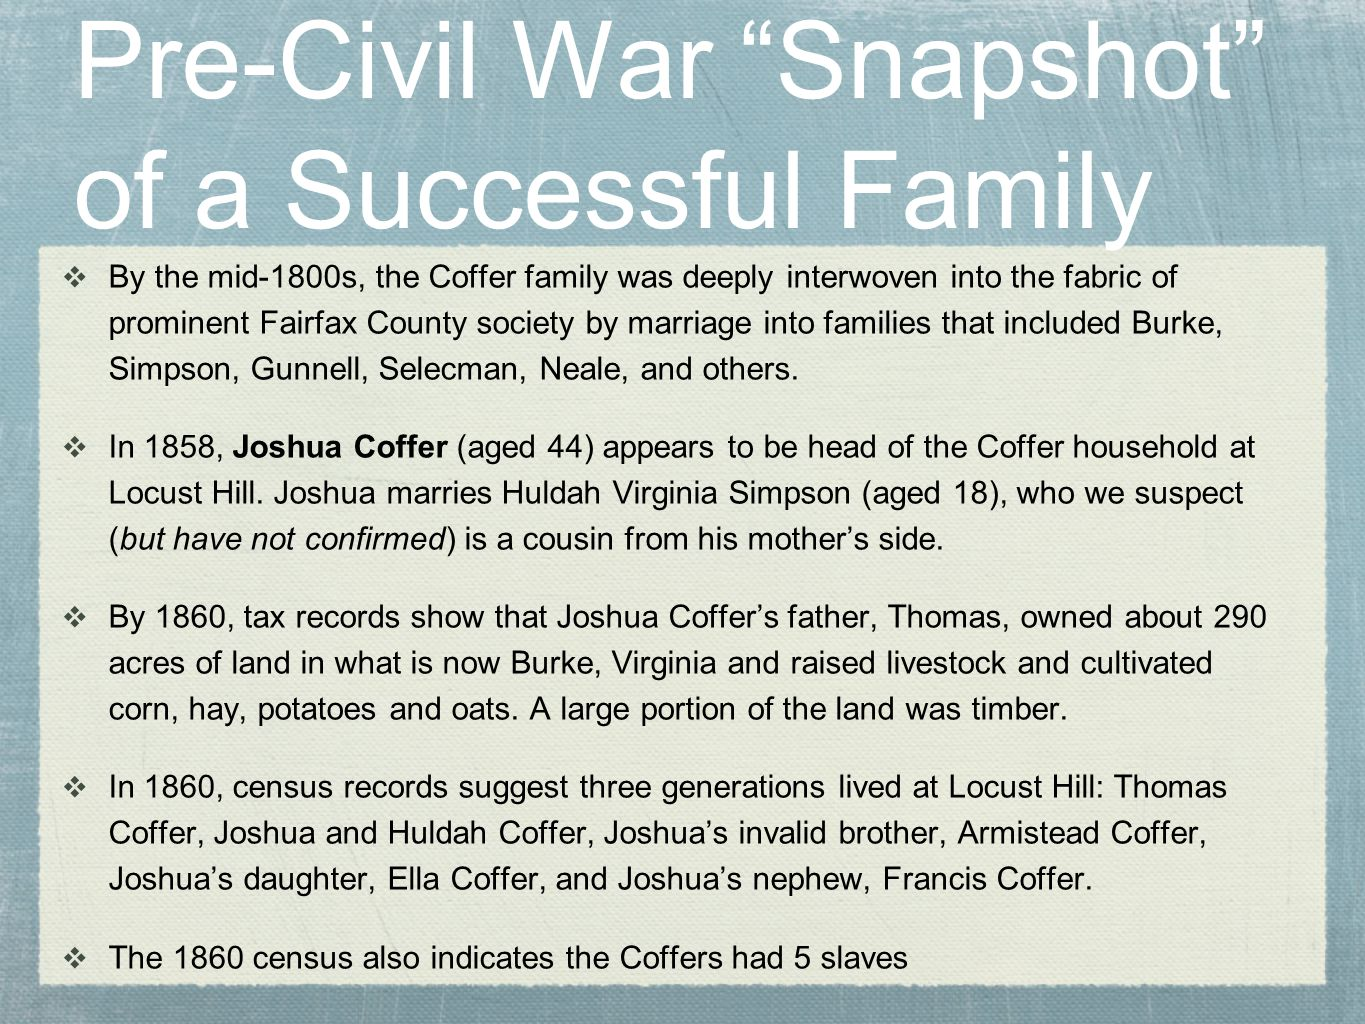 Pre-Civil War Snapshot of a Successful Family